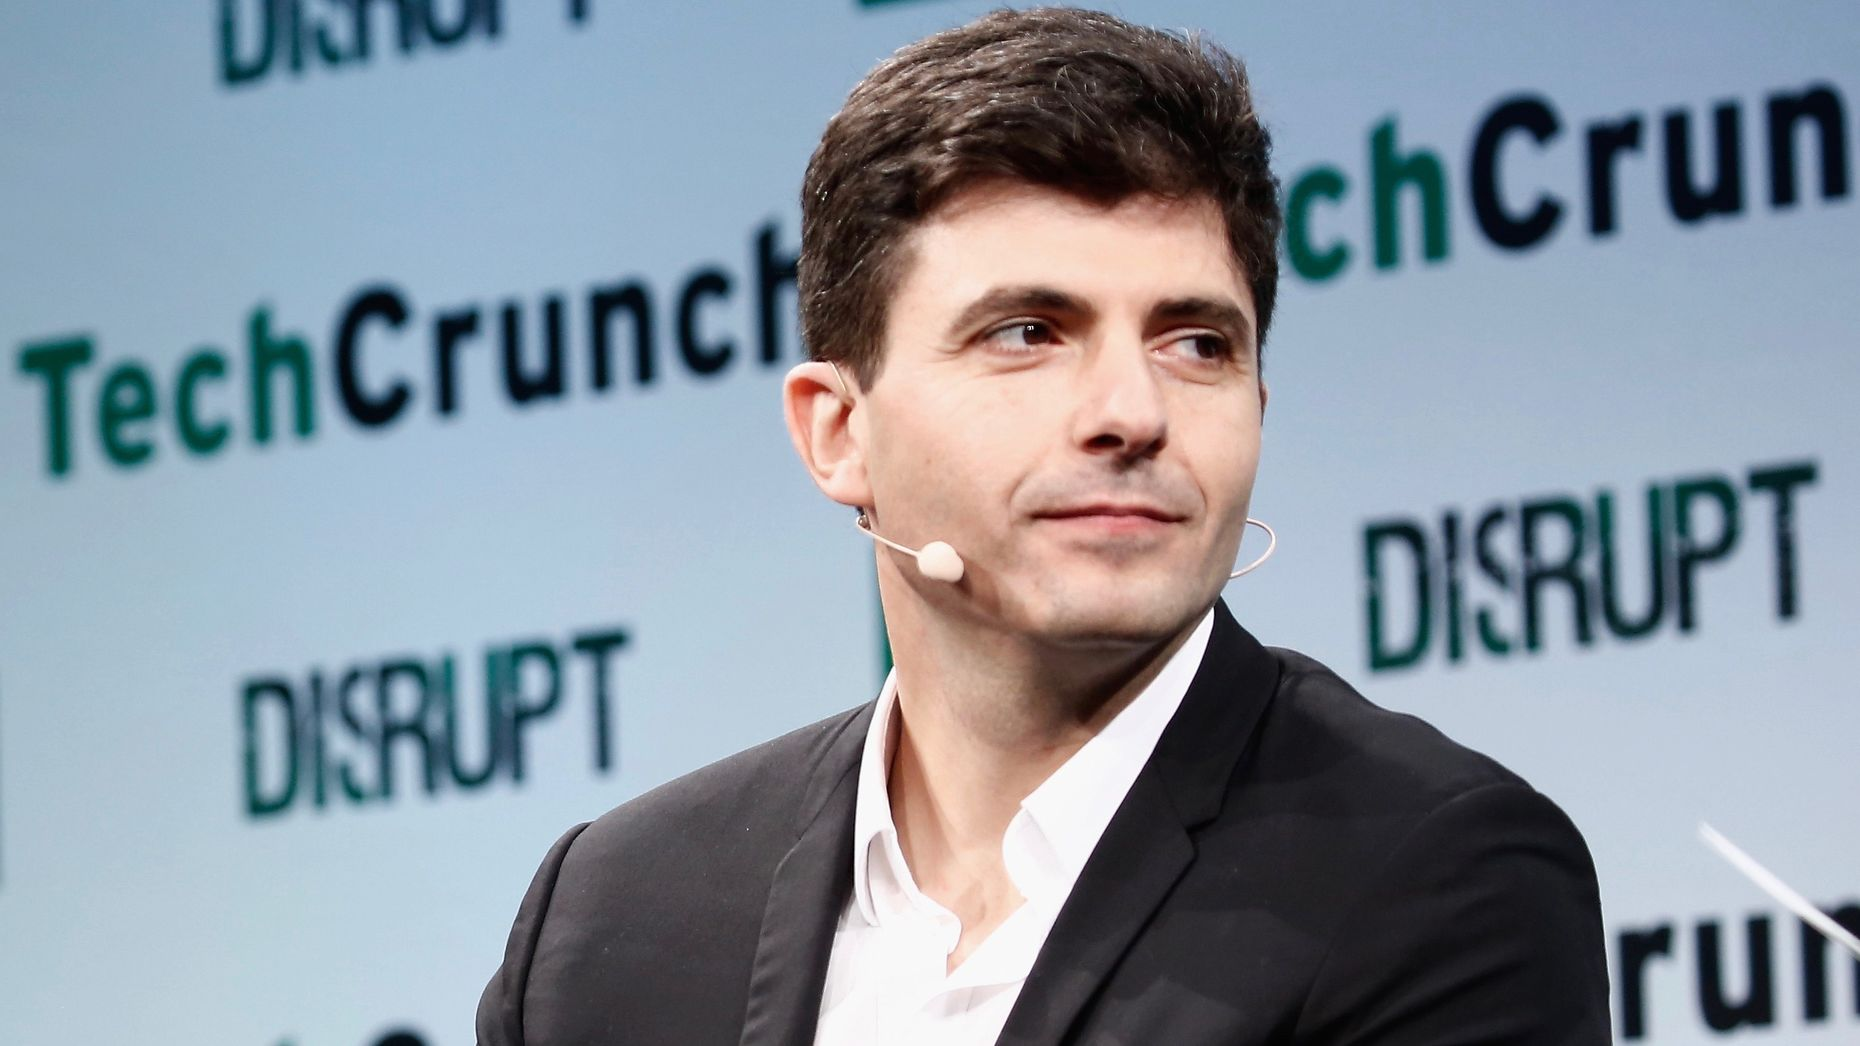 Dave Waiser, Gett CEO. Photo by Flickr/TechCrunch.